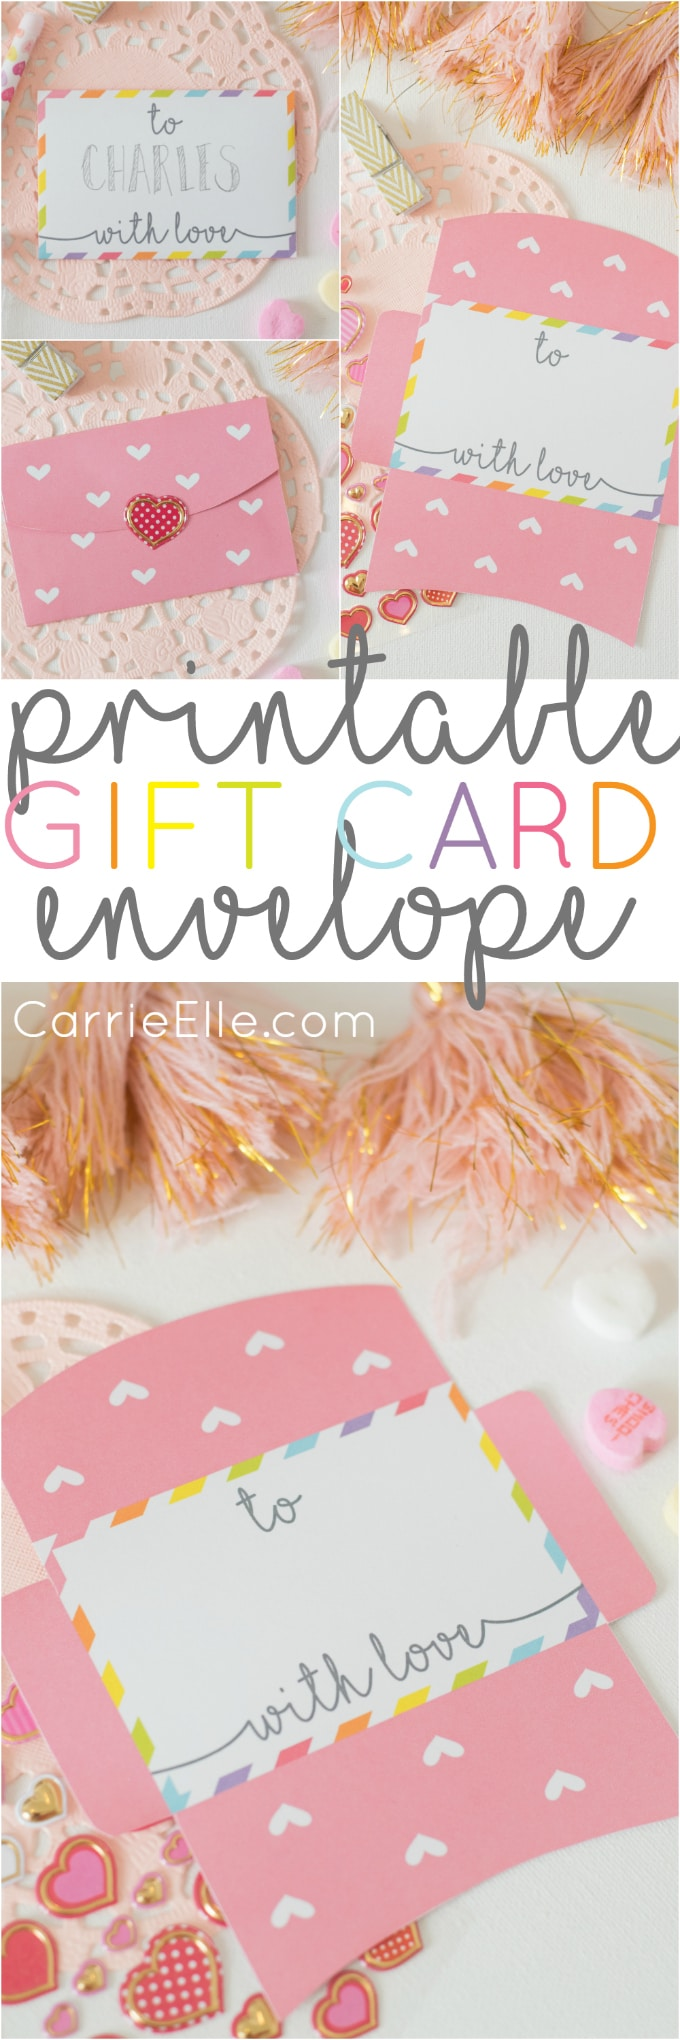 Printable Gift Card Envelope